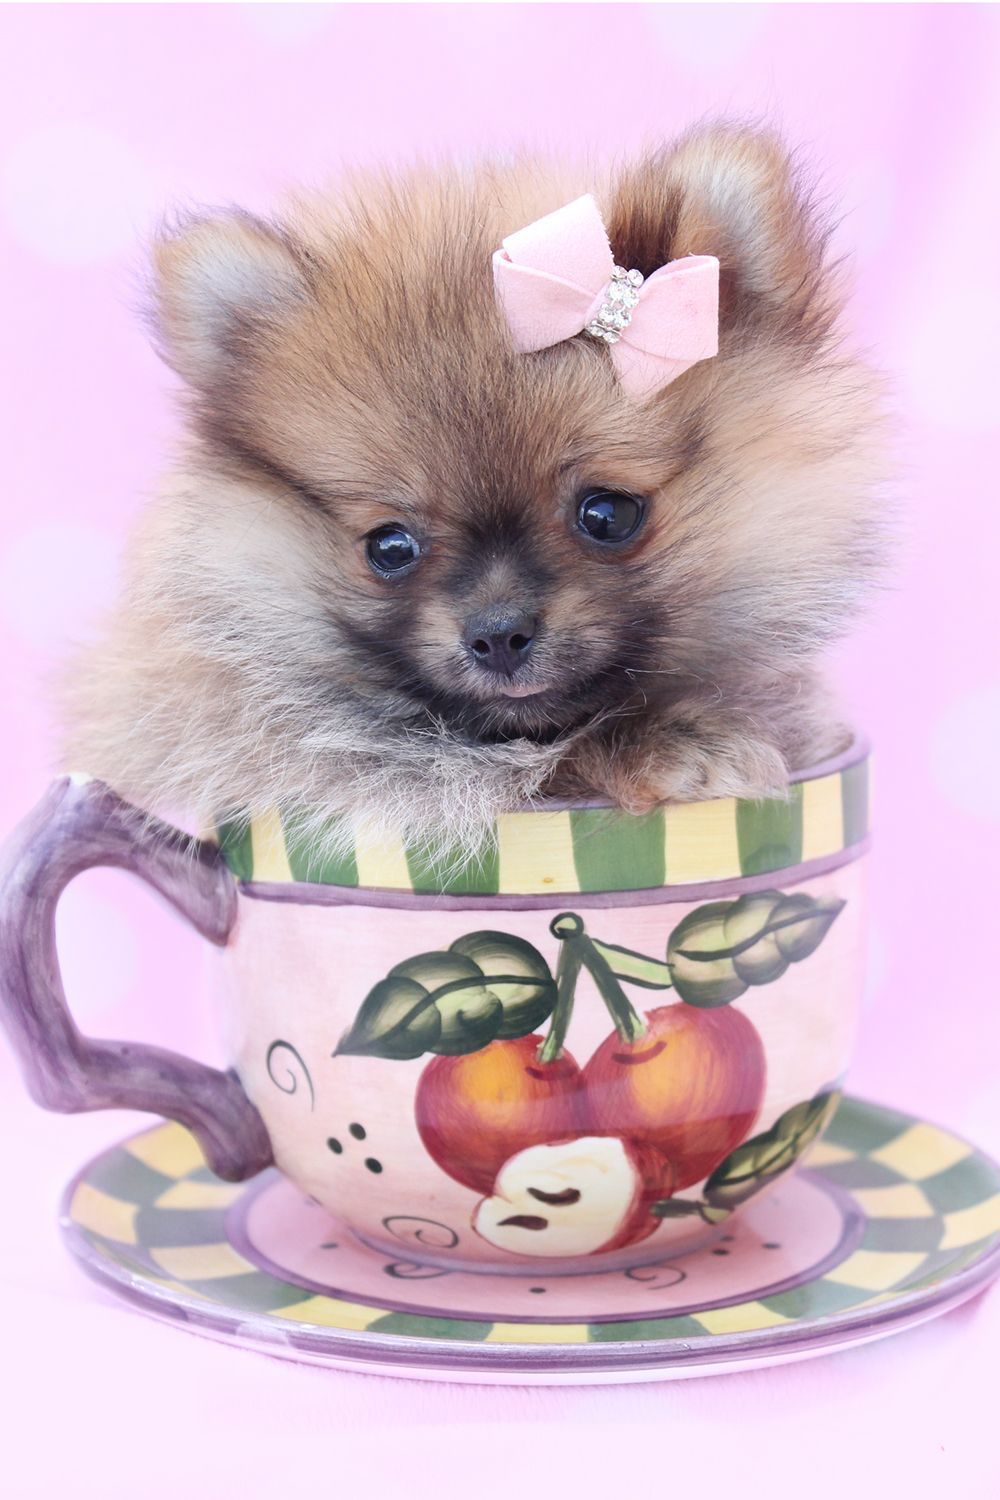 Pomeranian Puppies For Sale in Florida Pomeranian puppy